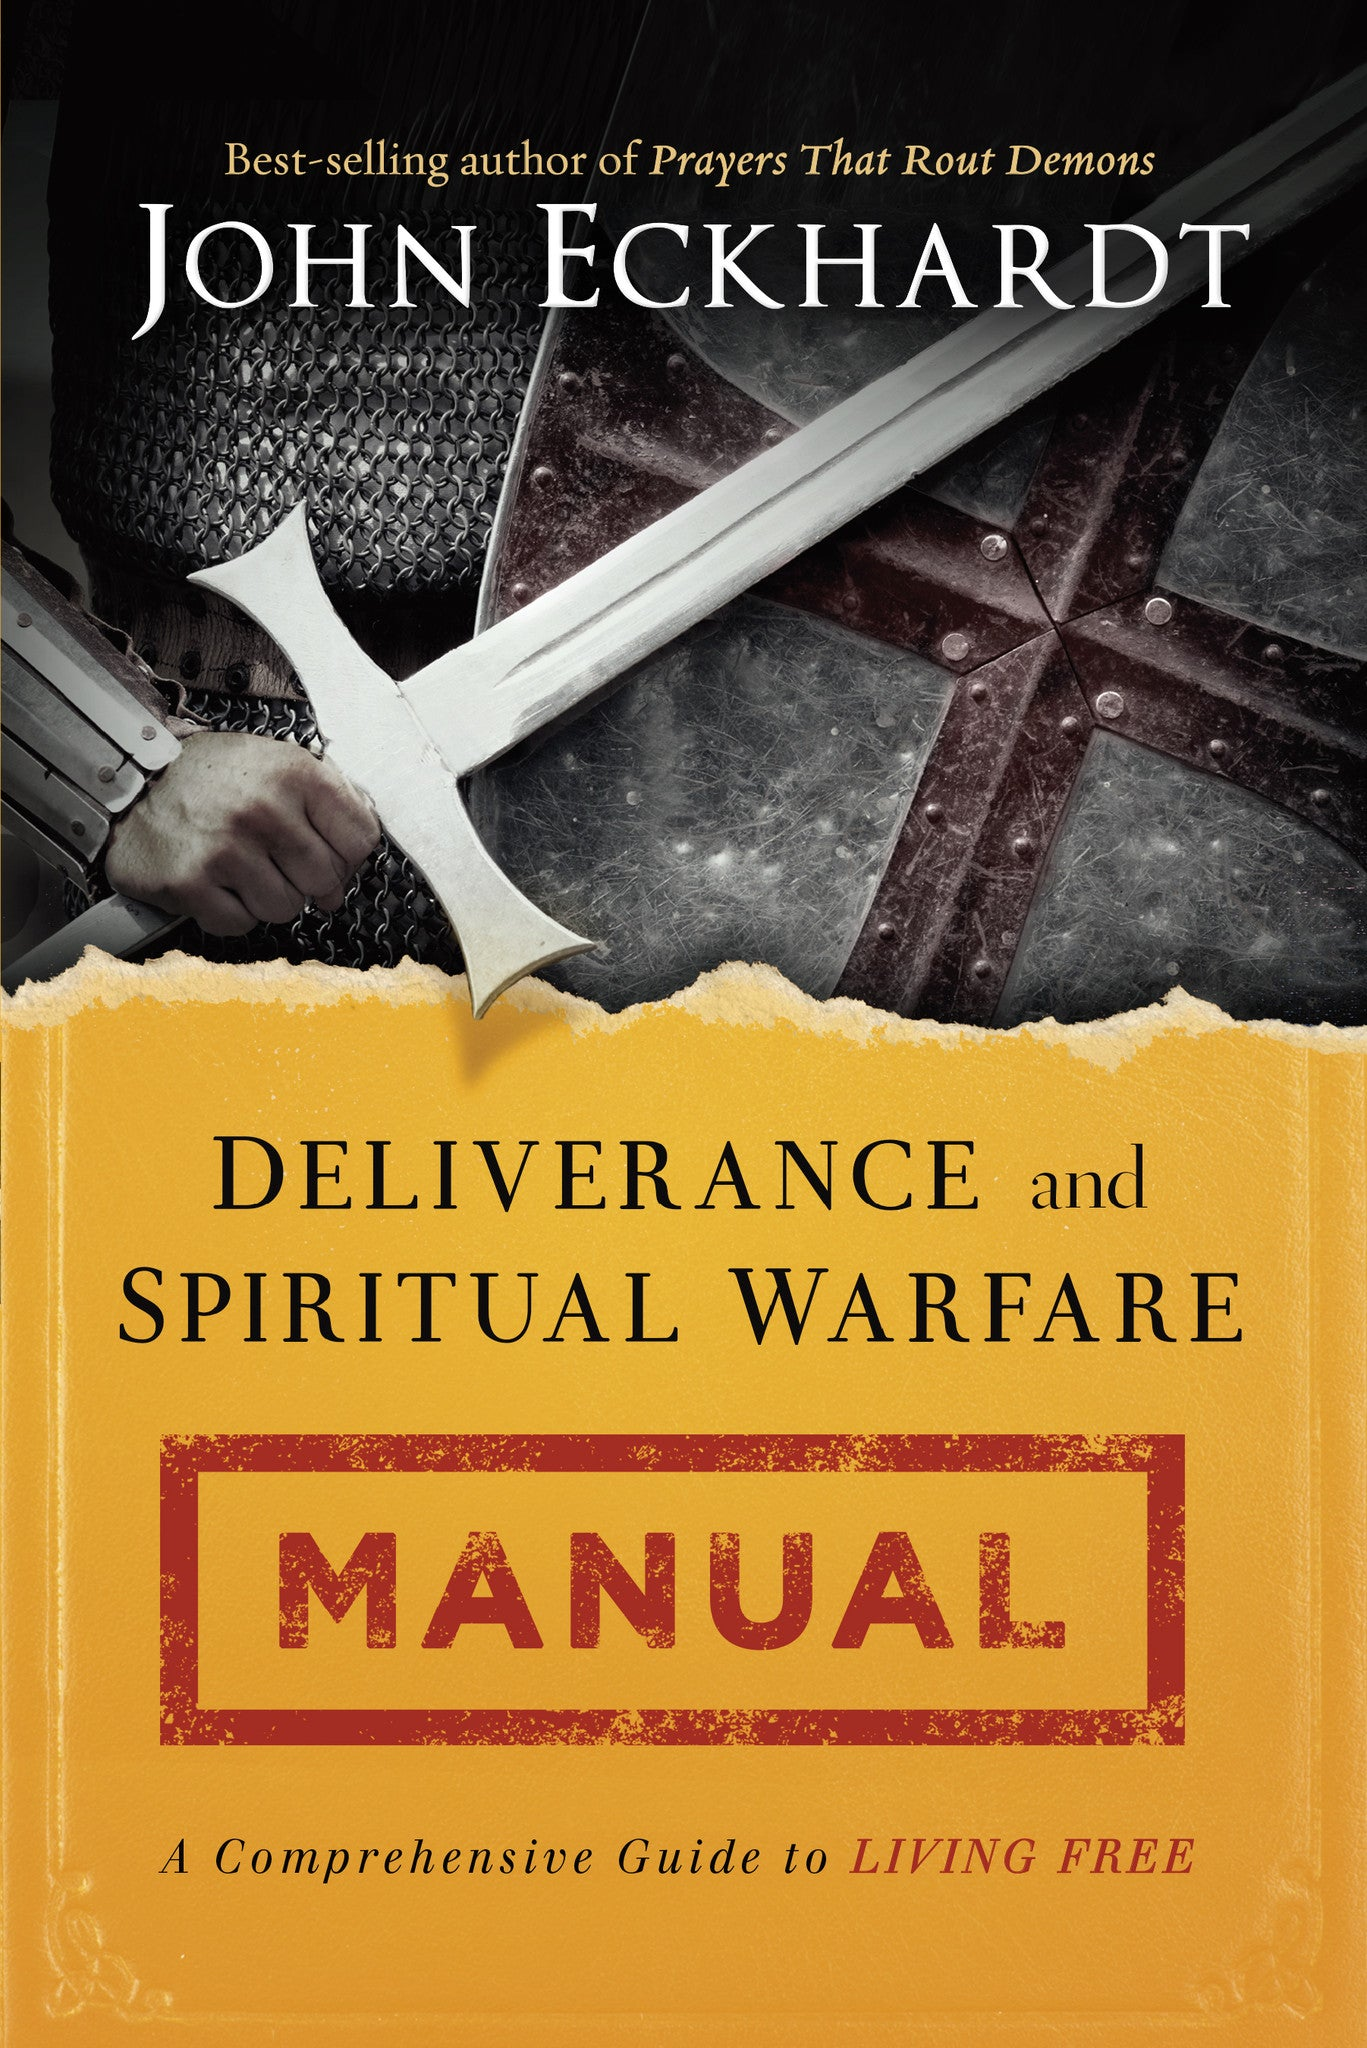 Biblical Spiritual Warfare Manual Manual Guide